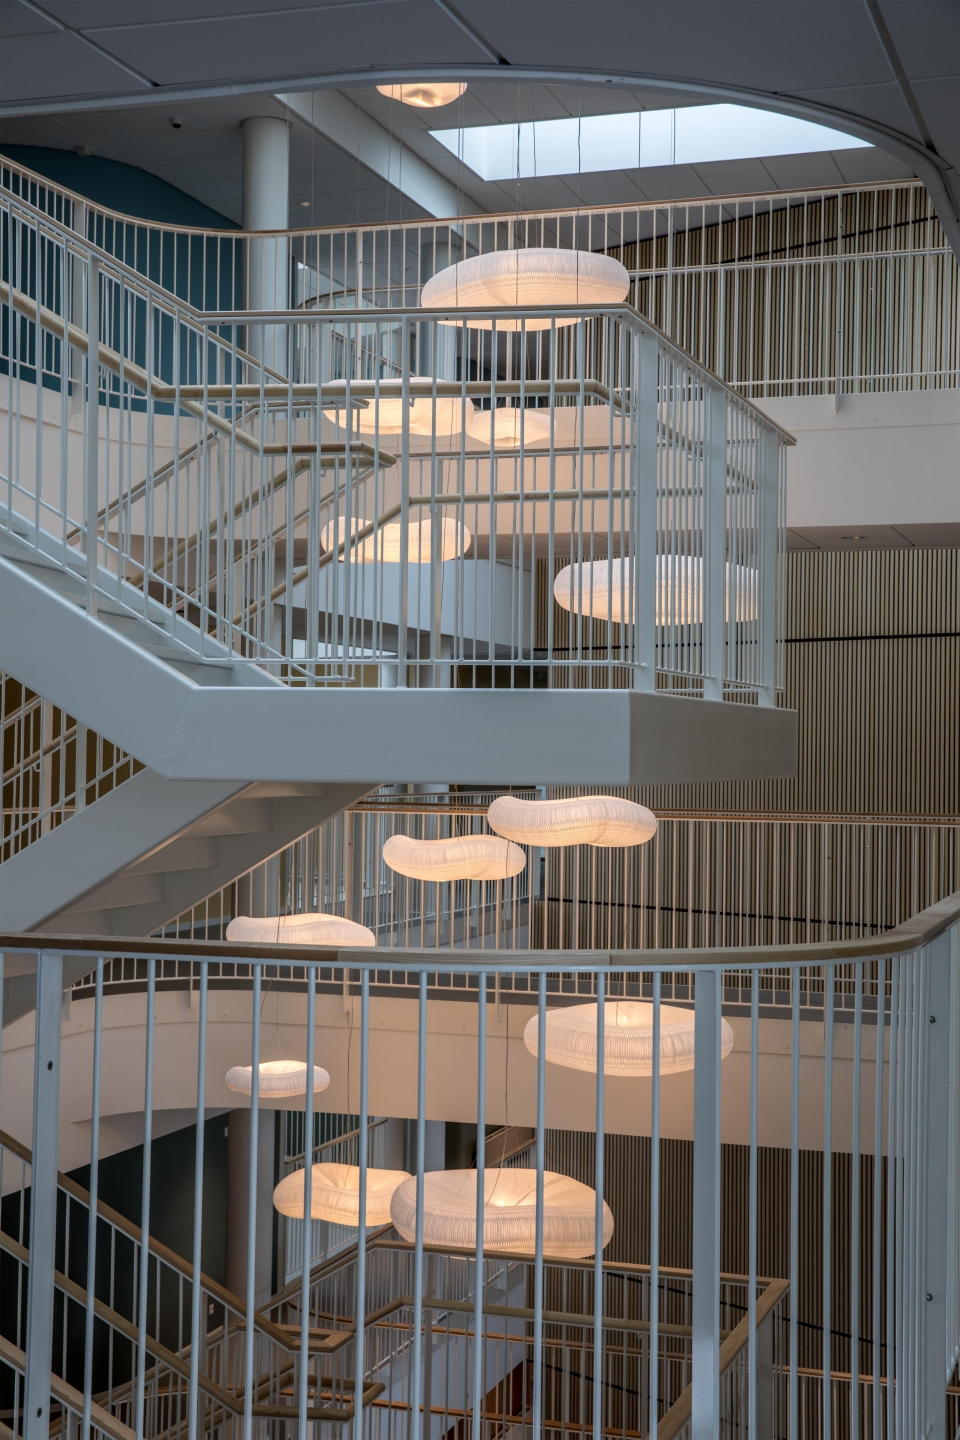 cloud softlight pendant fills the space around an open staircase.